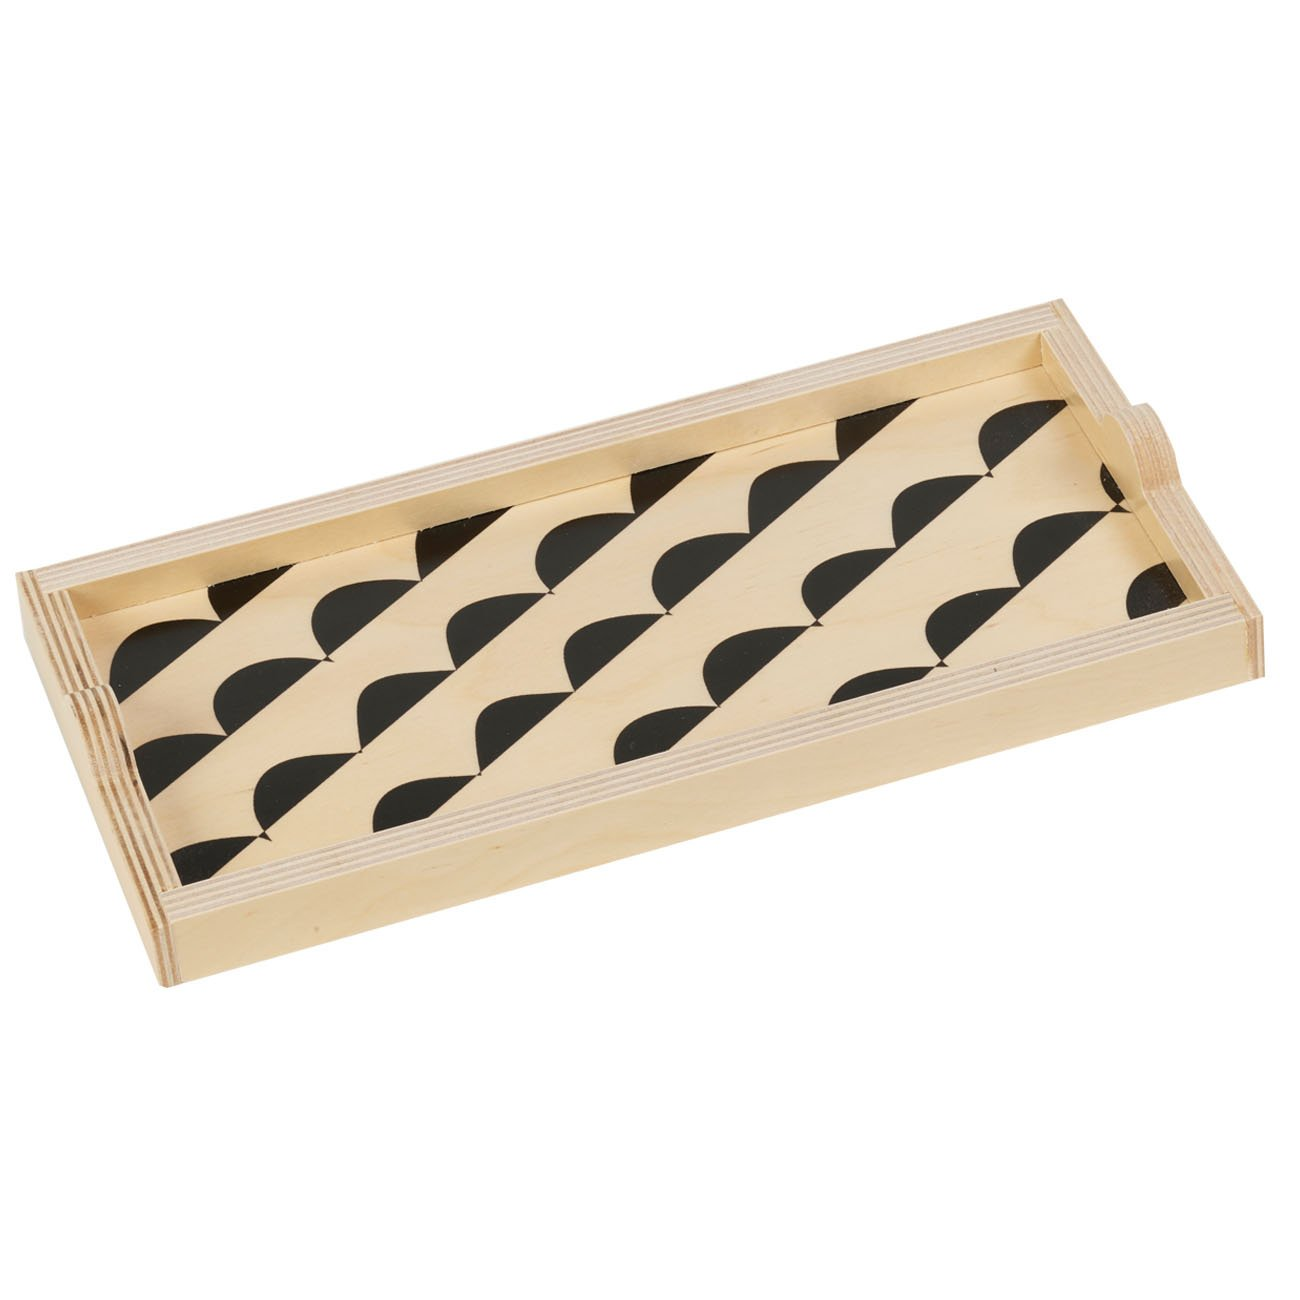 Wolfum Curve Mini Tray